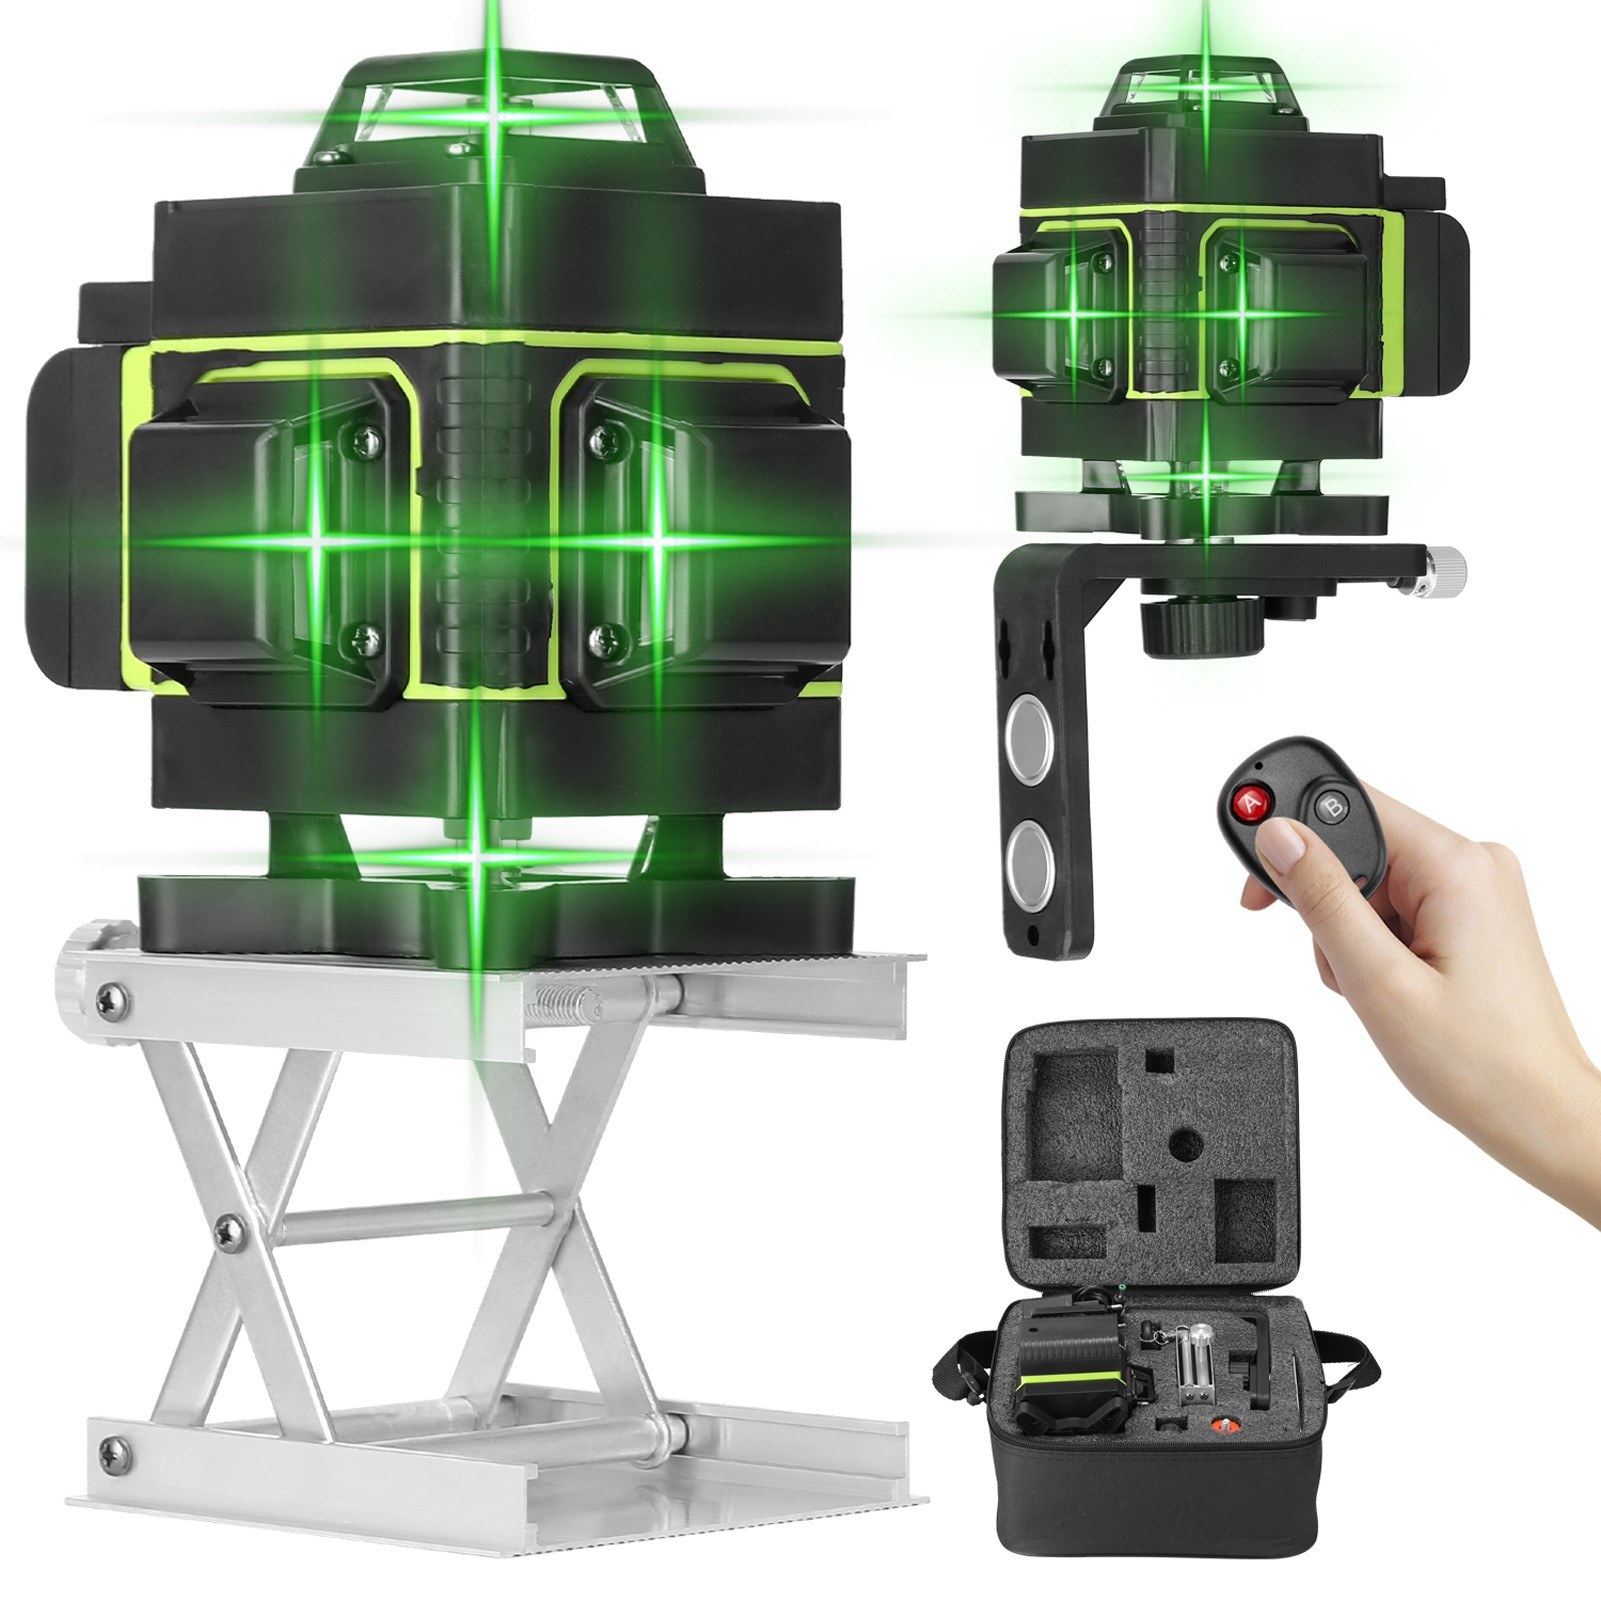 TomTop - [EU Warehouse] 37% OFF Multifunctional 16 Lines Laser Level 3° Self-leveling Function Leveling Tool, Free Shipping $73.99 (Inclusive of VAT)